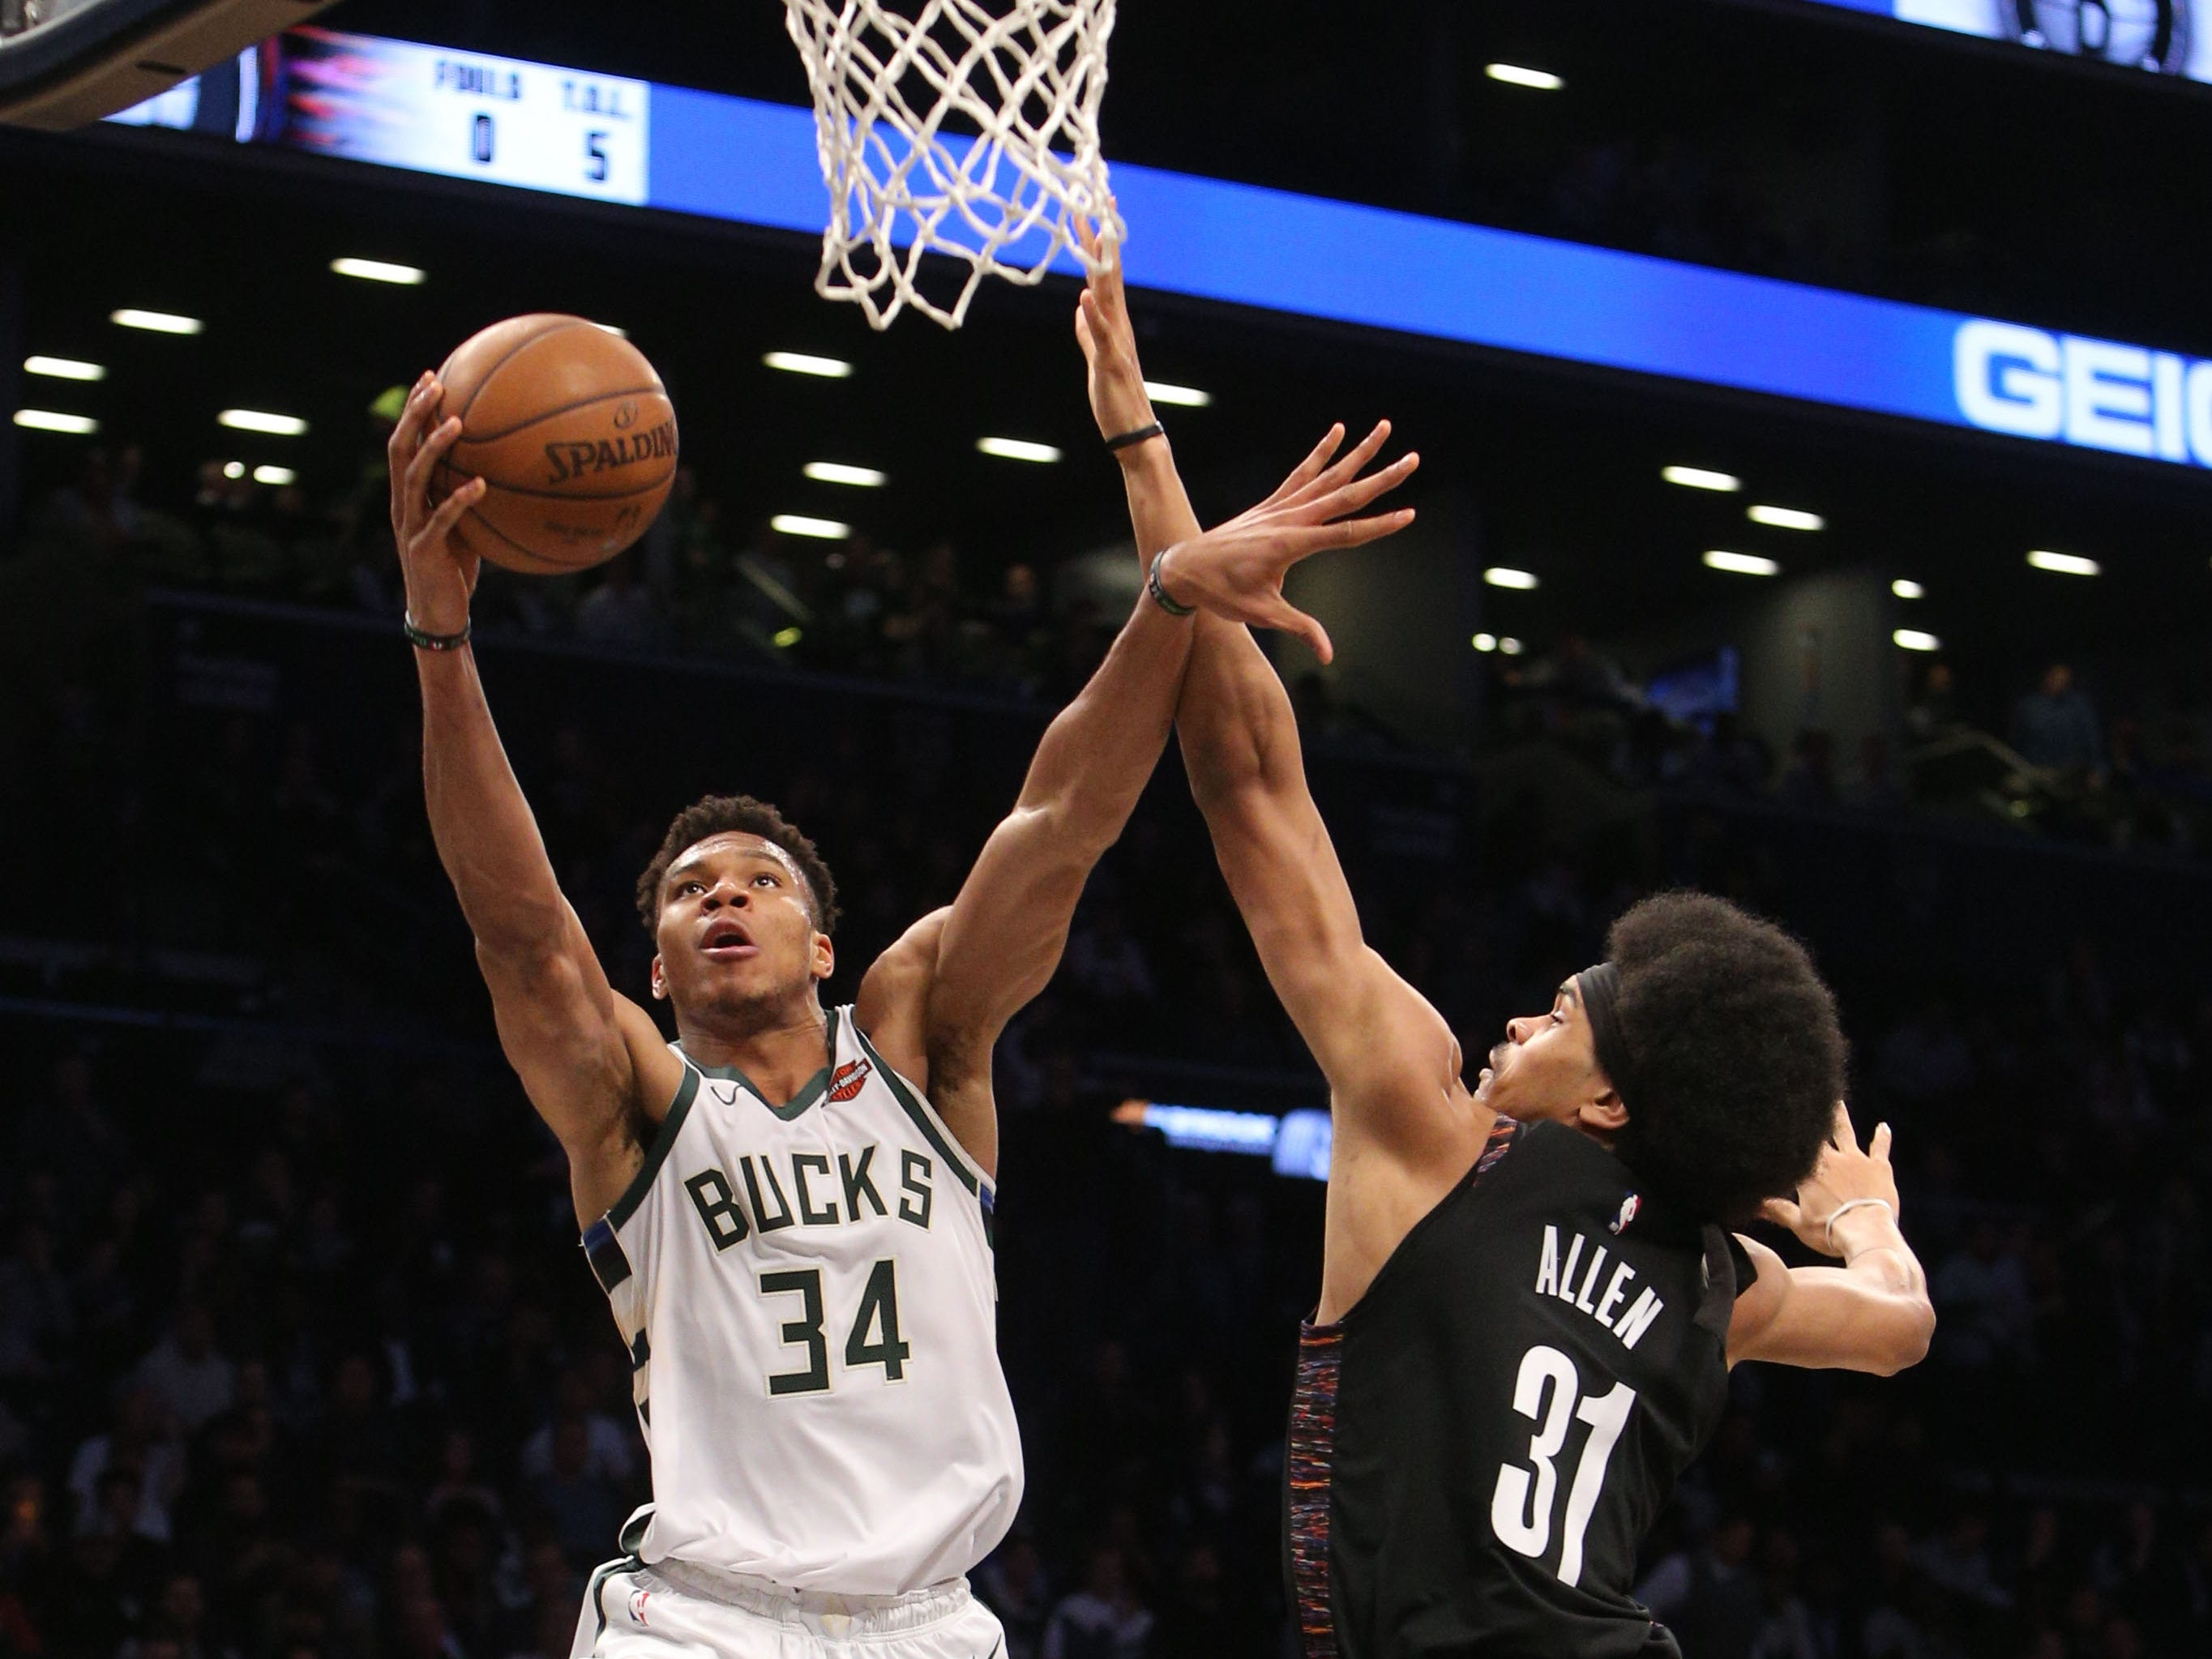 Bucks forward Giannis Antetokounmpo fends off Nets center and shot blocker extraordinaire Jarrett Allen as he goes in for a layup during the third quarter Monday.